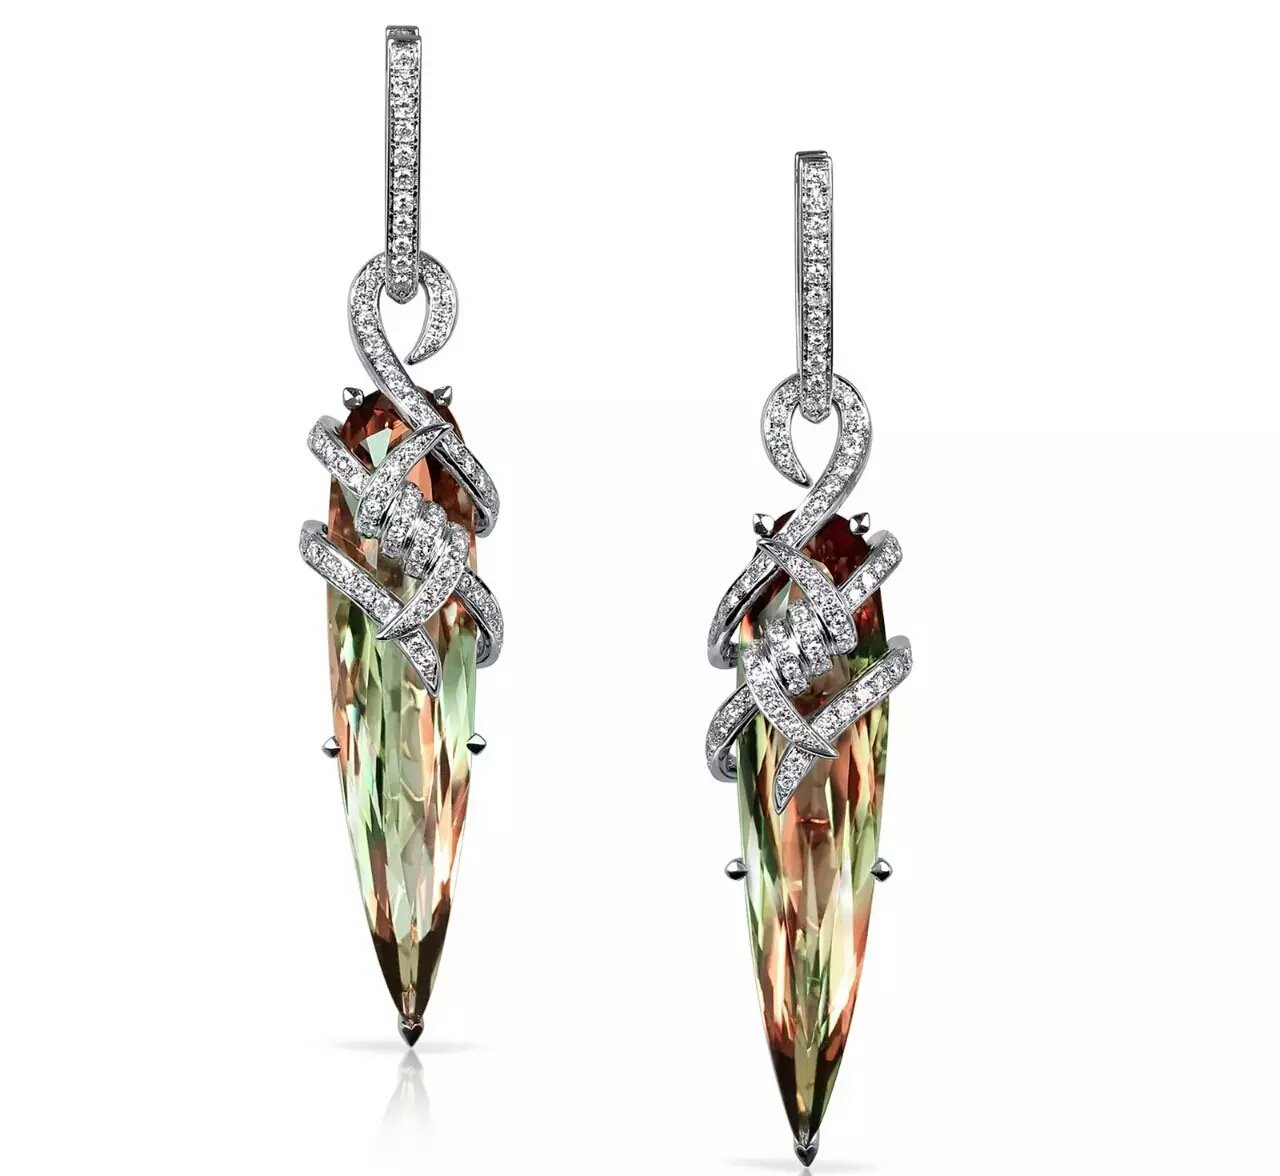 silver earrings zultanite alexandrite changing colors gem fine jewelry 925 sterling silver jewelry micro paved rock style earrings (Rhodium)